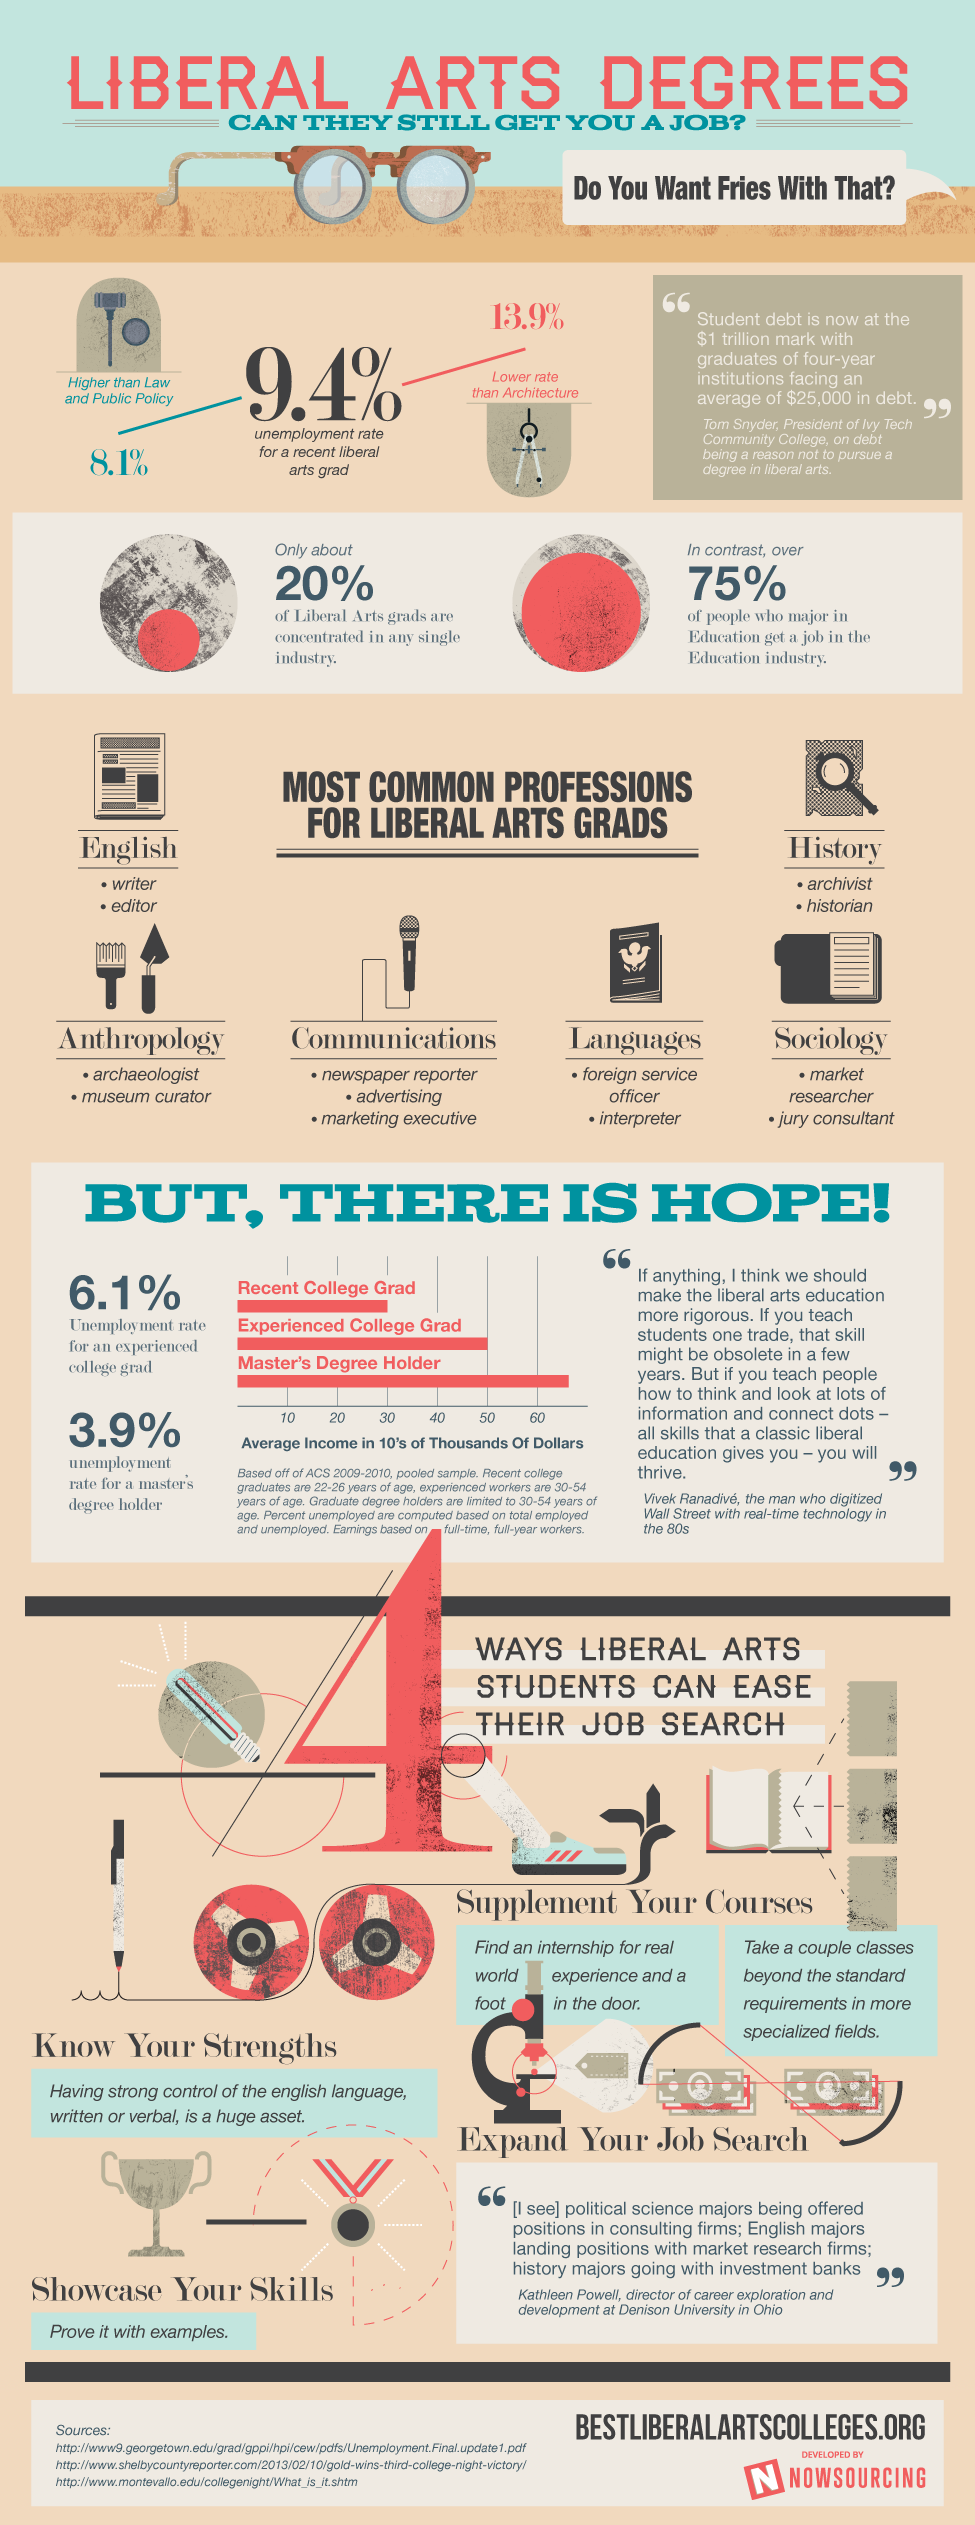 Liberal Arts Degrees: Can They Still Get You a Job?